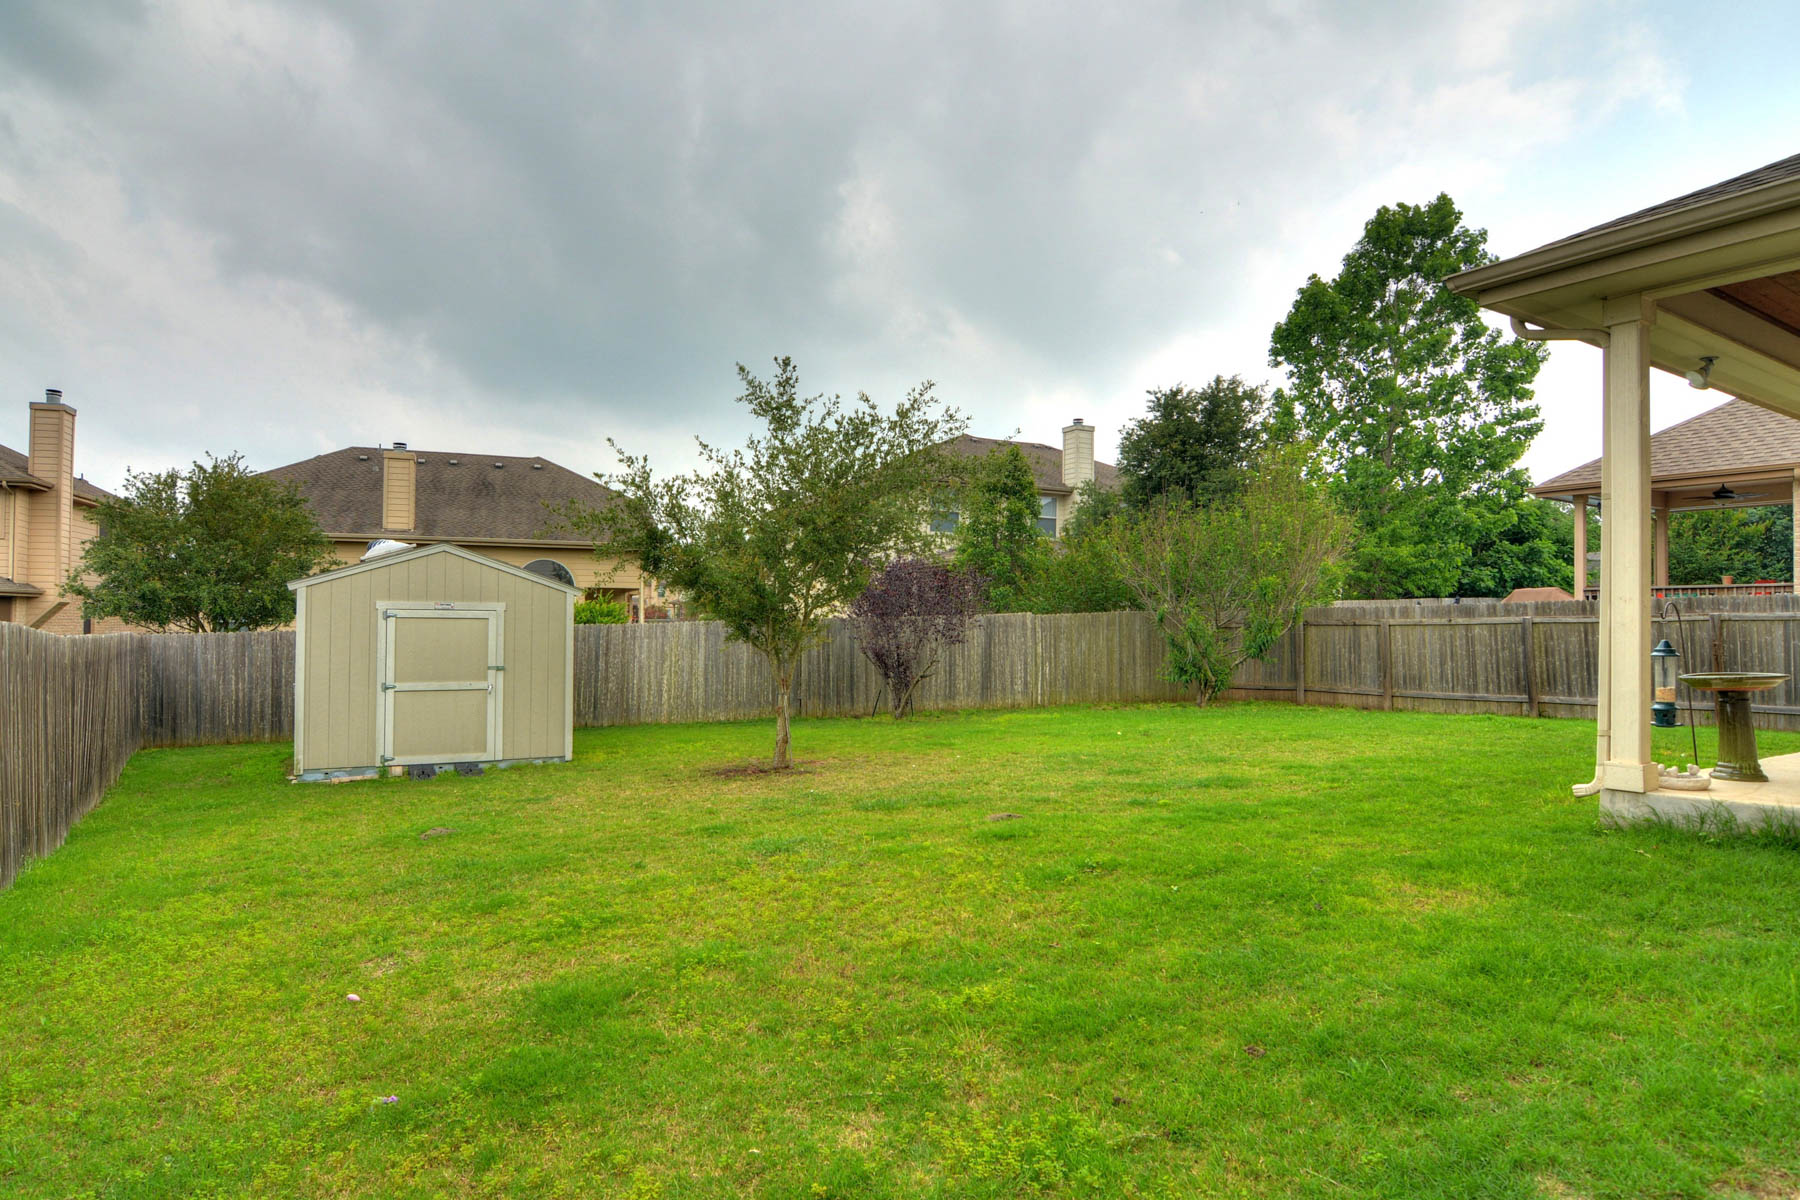 Additional photo for property listing at Great Neighborhood & School District 2628 Riva Ridge Cir Schertz, Texas 78108 United States